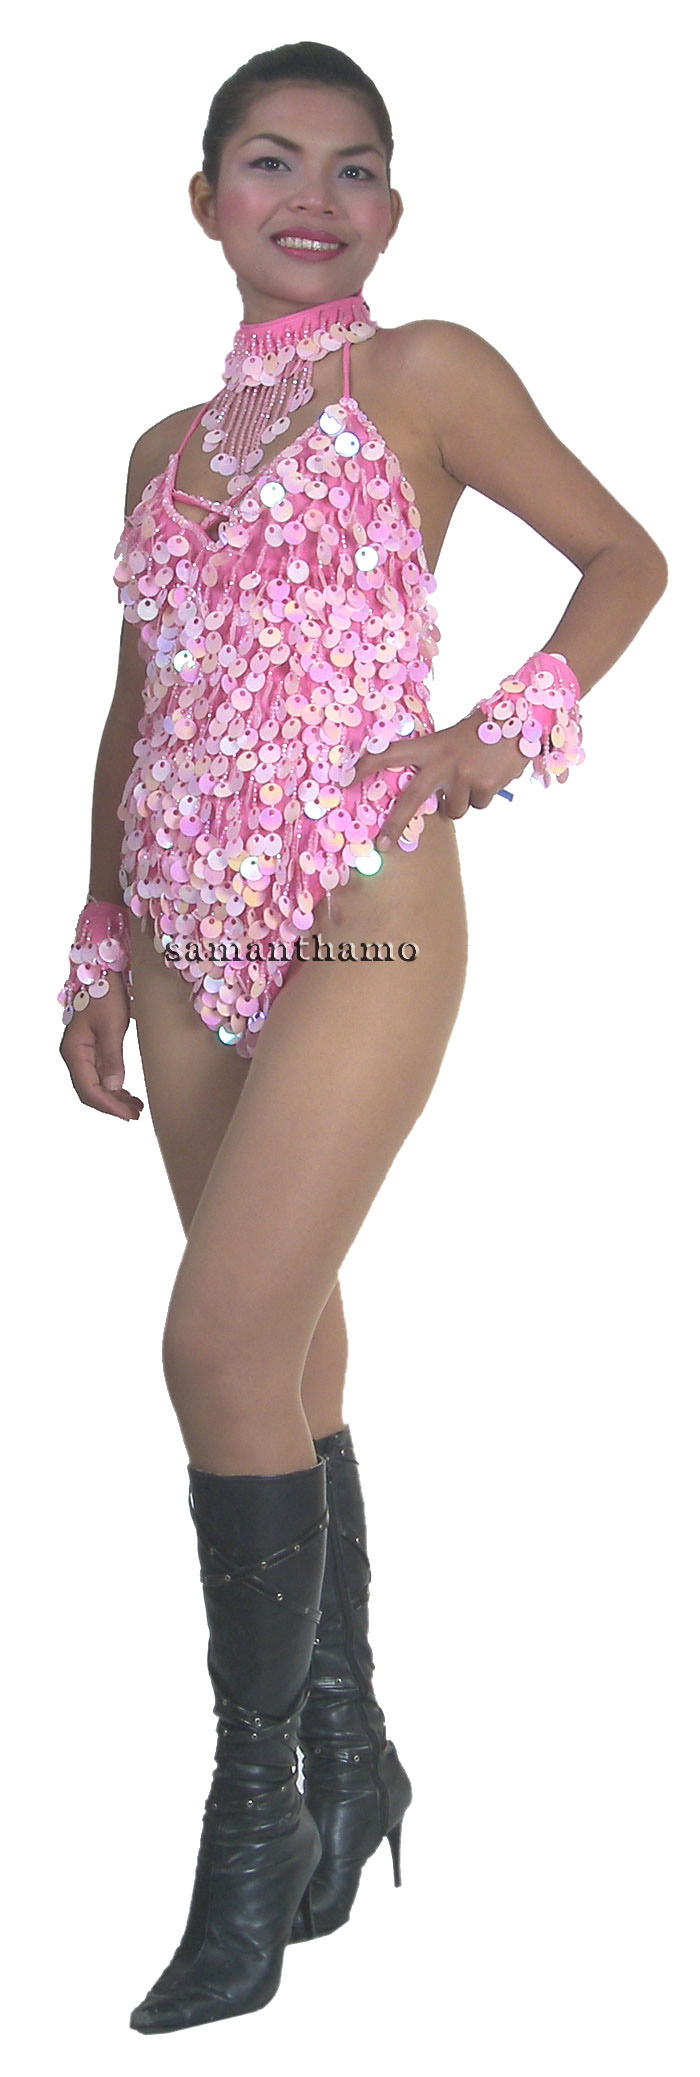 https://michaeljacksoncelebrityclothing.com/sequin-cabaret-clothing/RML353%20pink%20SPARKLING%20SEXY%20SEQUIN%20DANCE%20LEOTARD.jpg